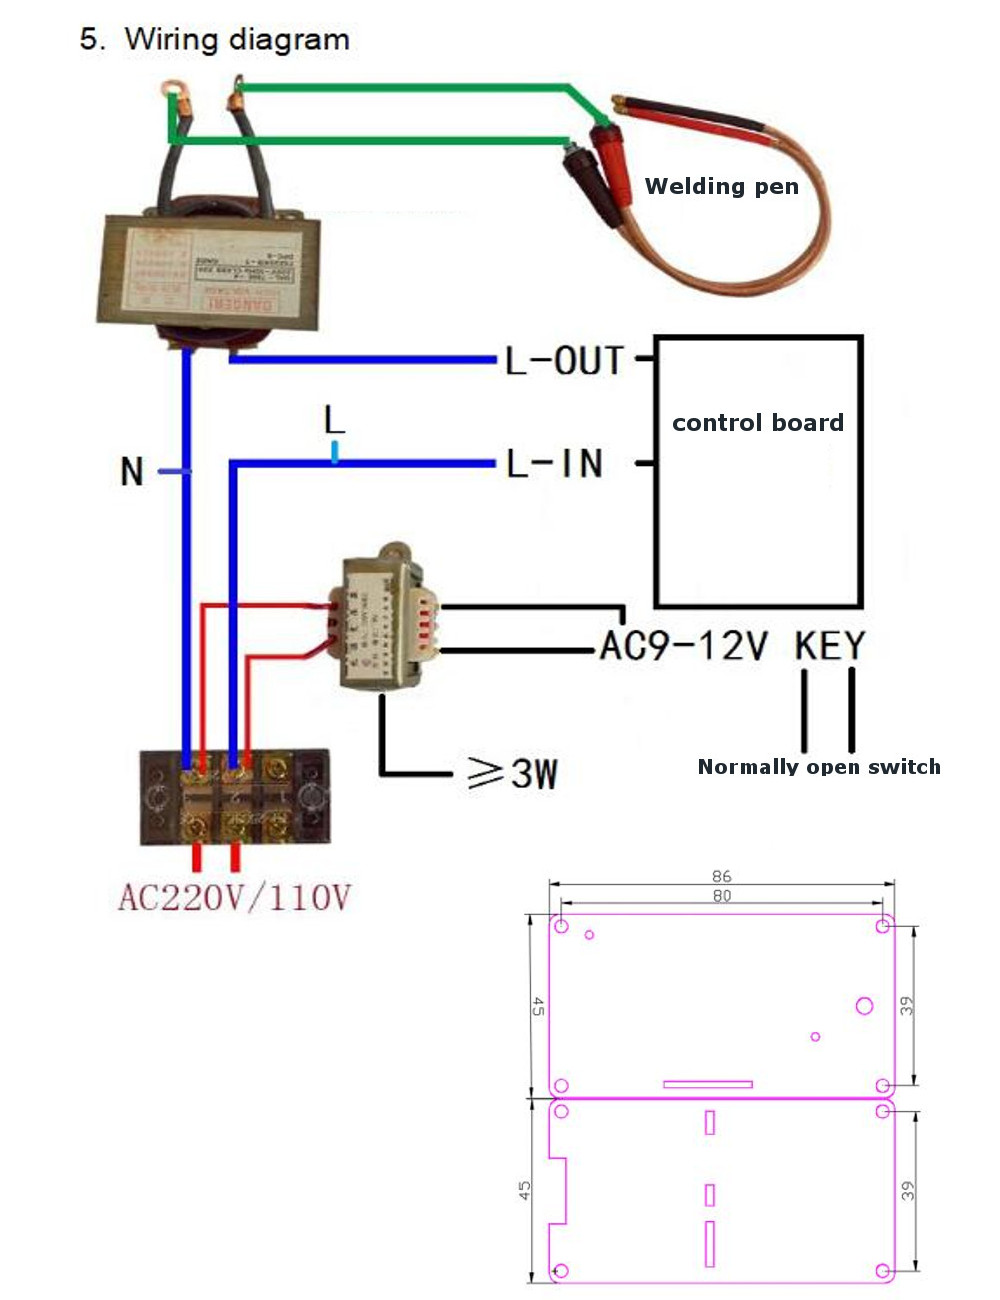 hight resolution of spot welding electrical diagram wiring diagram mega wiring diagram spot welding